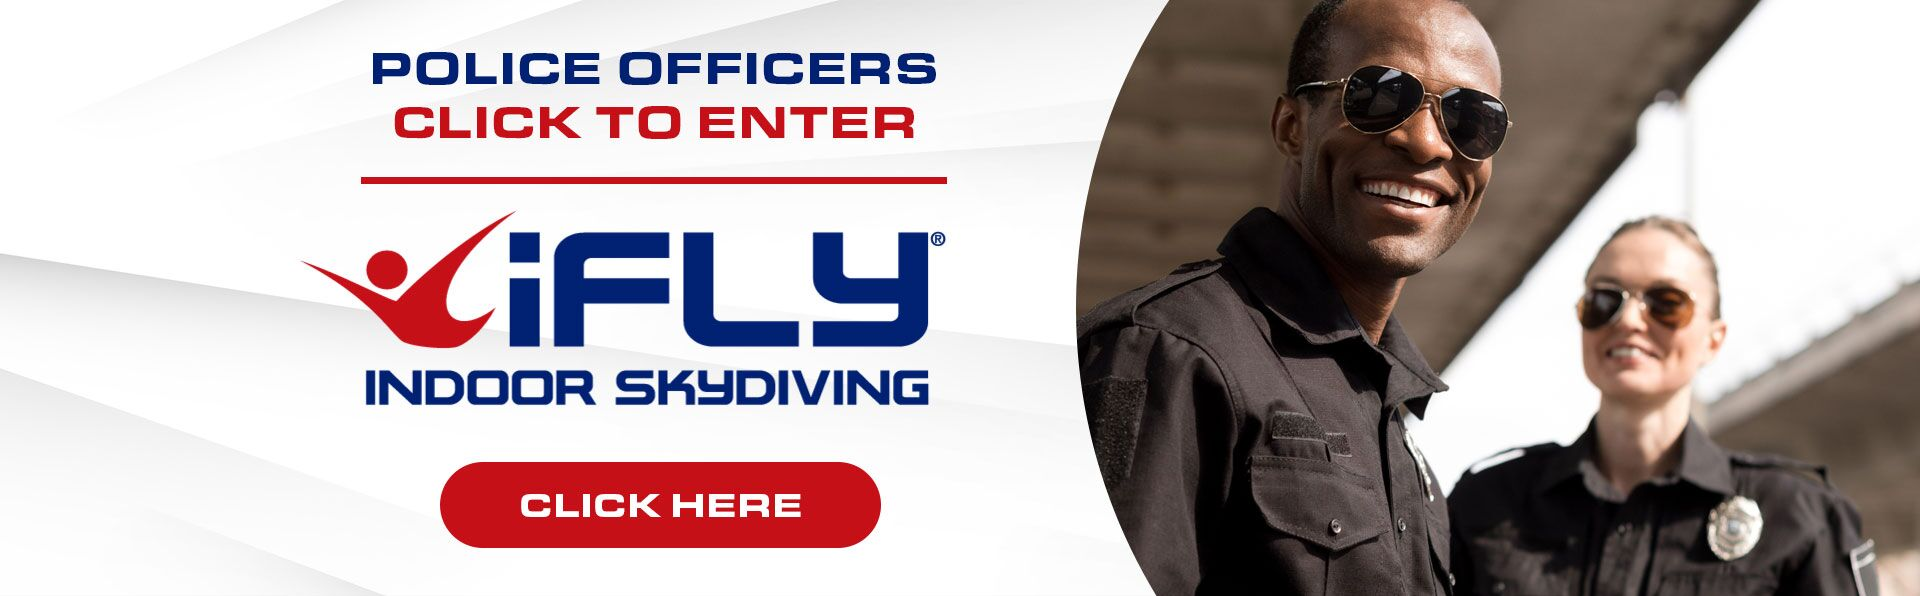 Police Officers iFly Indoor Skydiving Event